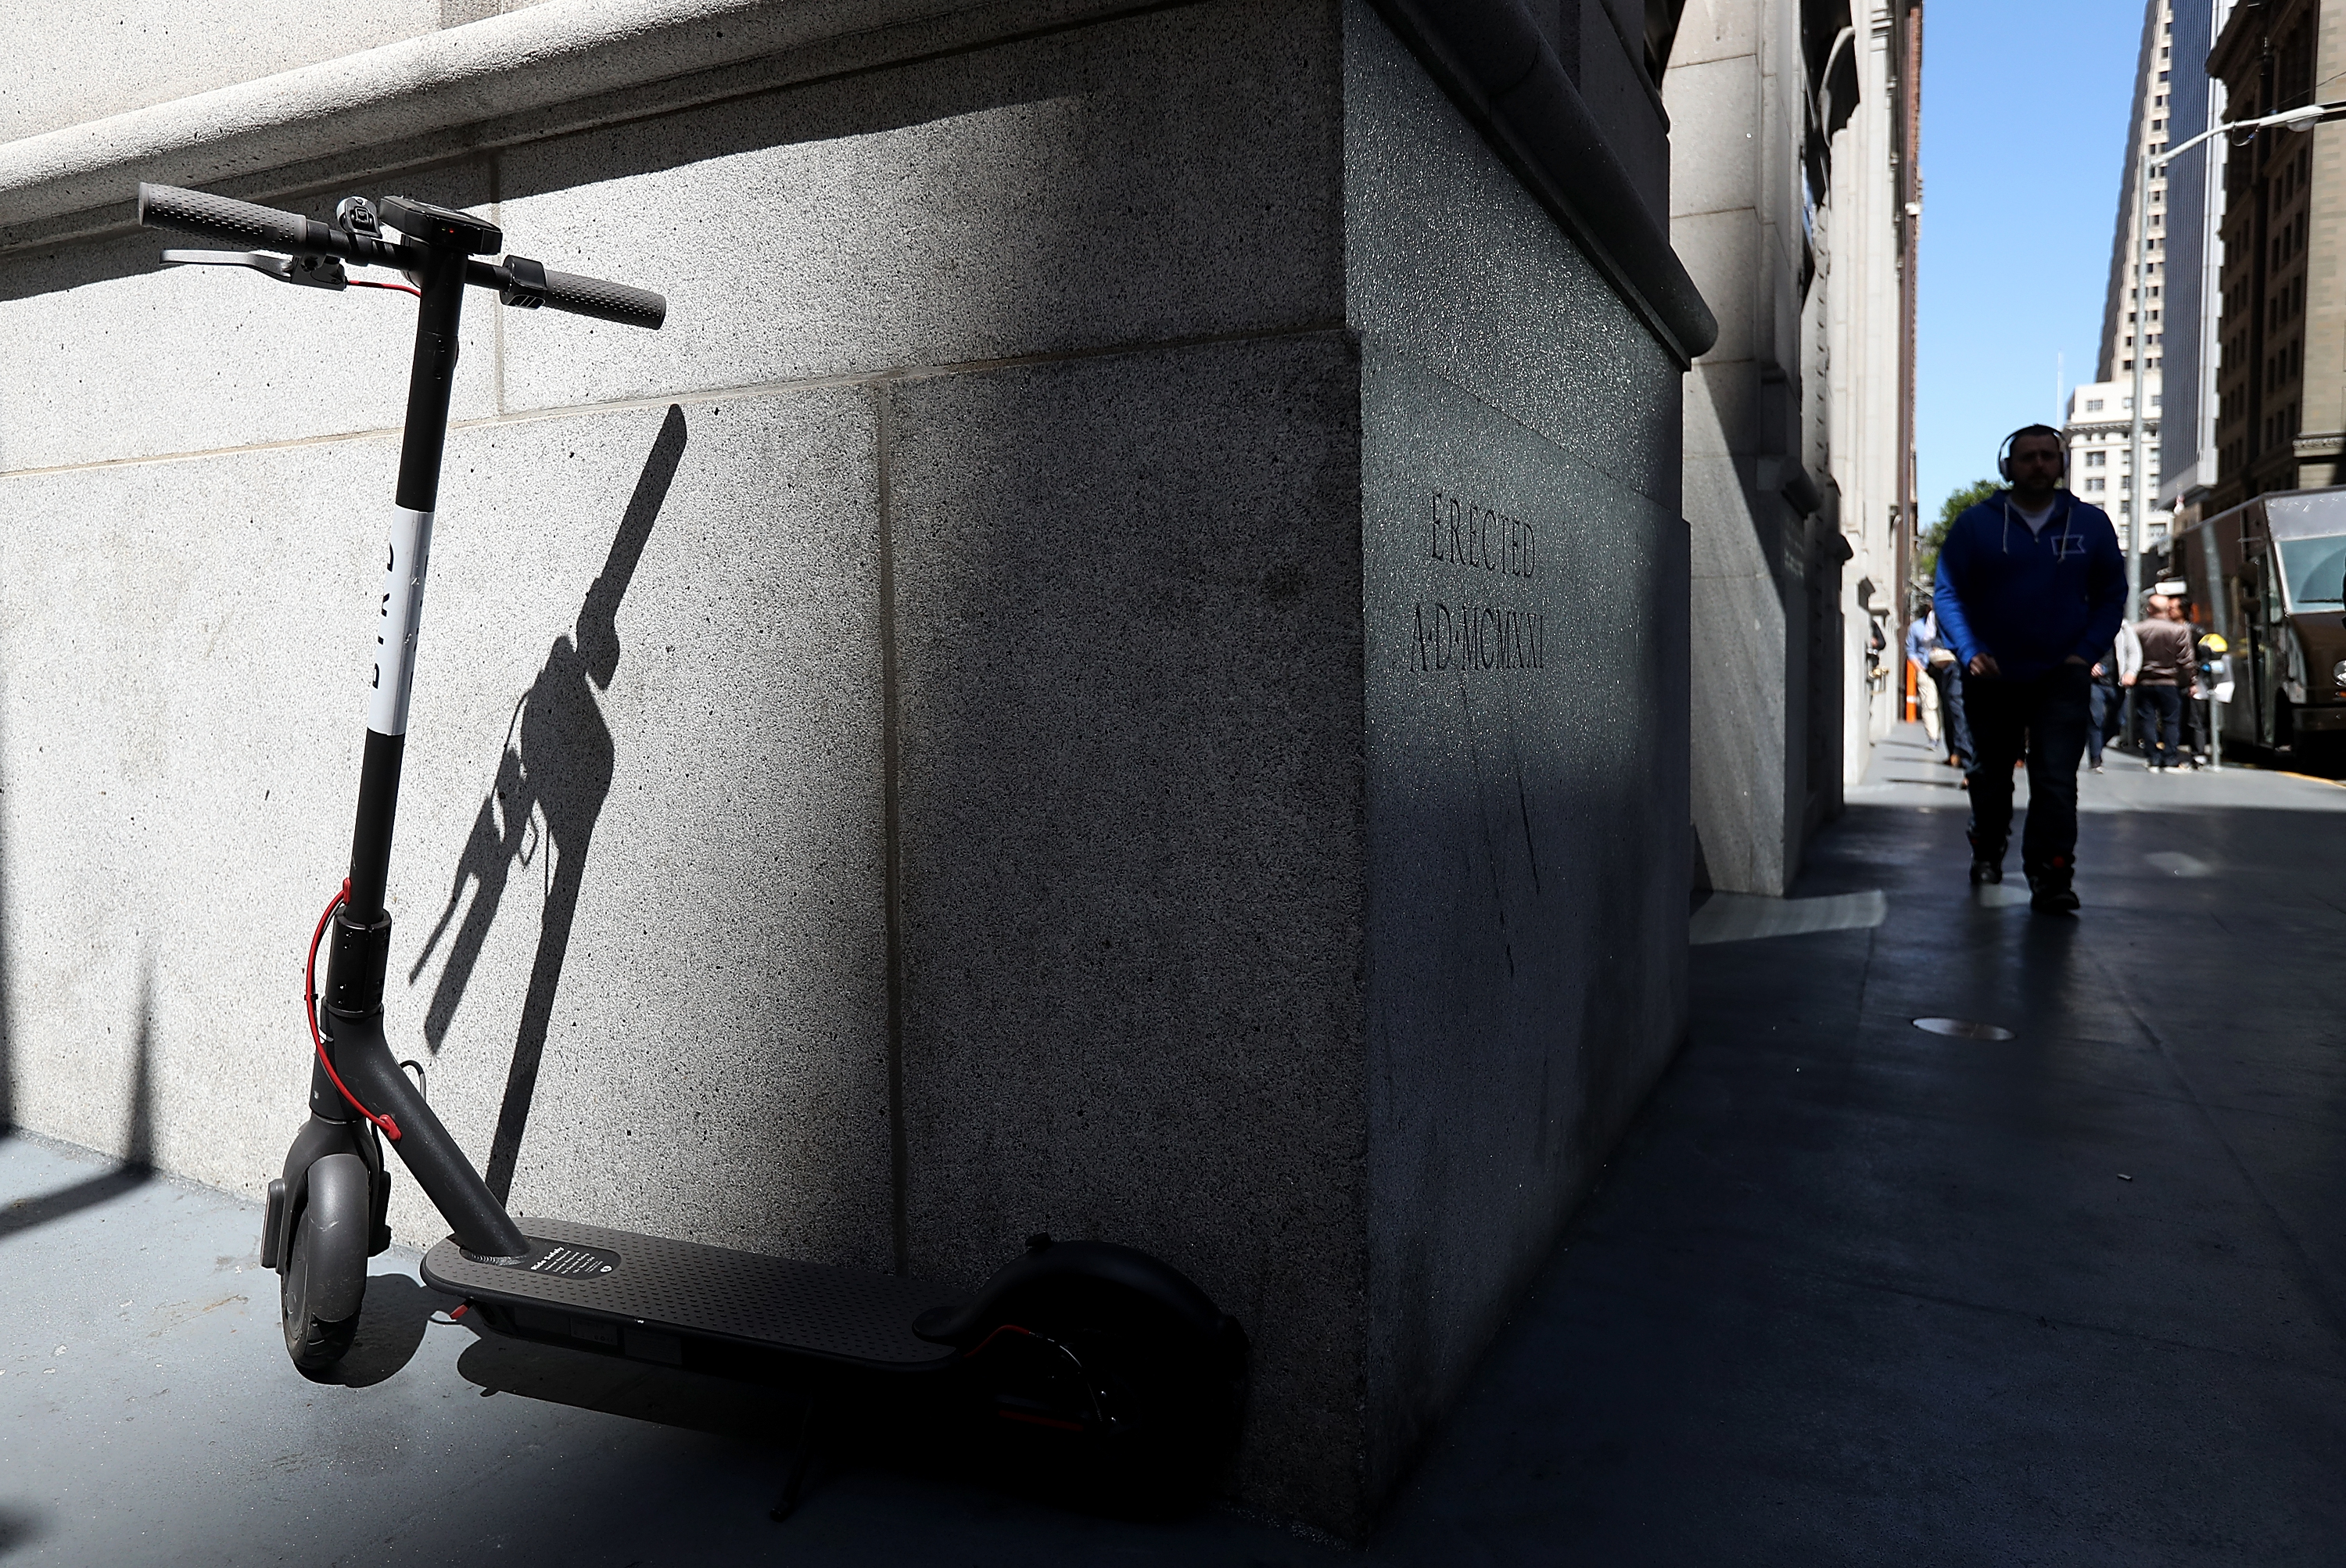 Scooter startup Bird will discount rides for people in low-income